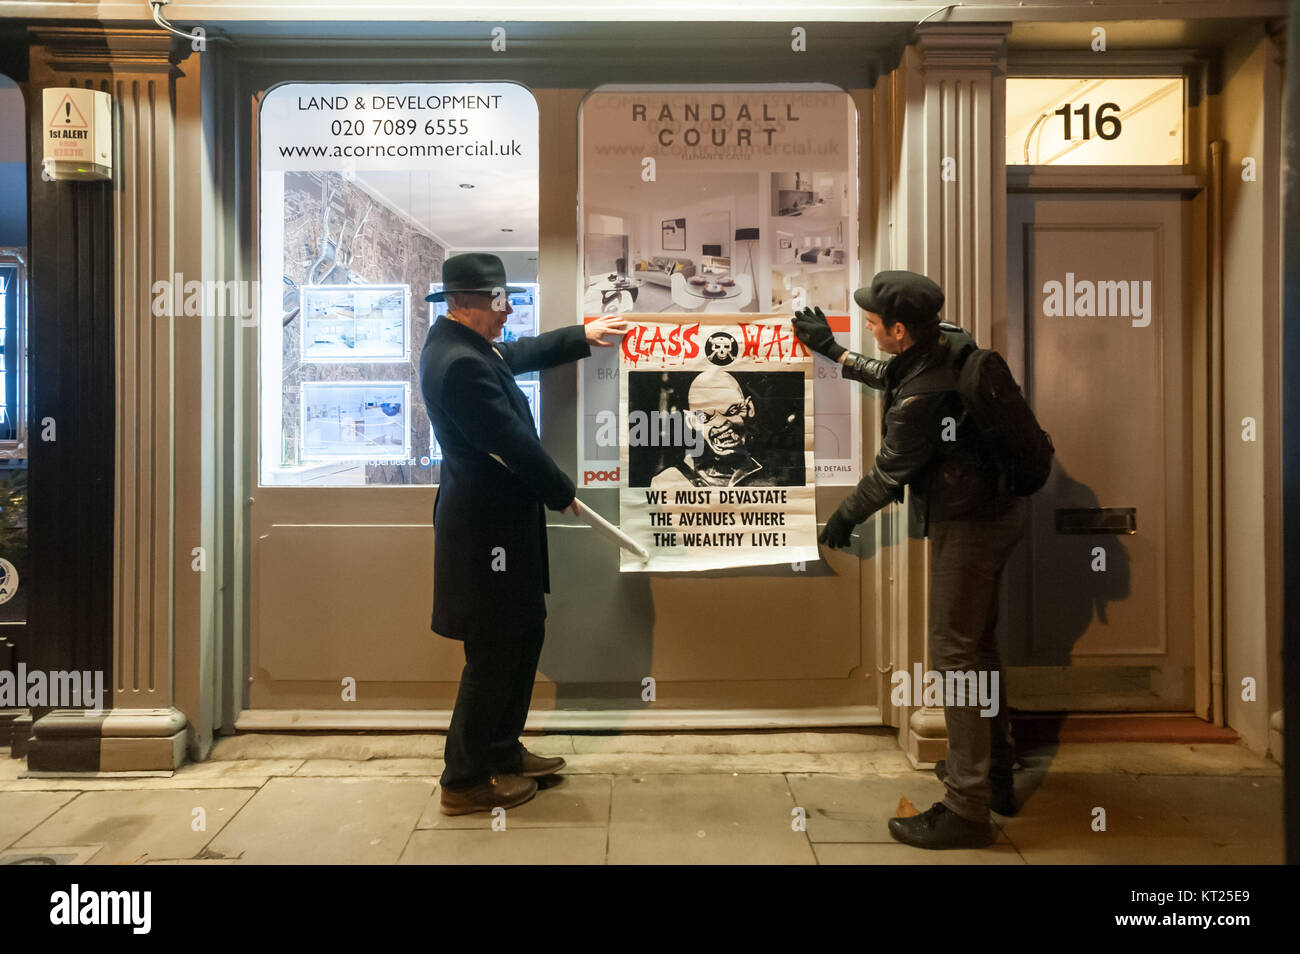 Ian Bone and Simon Elmer display the Class War poster 'We must devastate the avenues where the wealthly live' - Stock Image